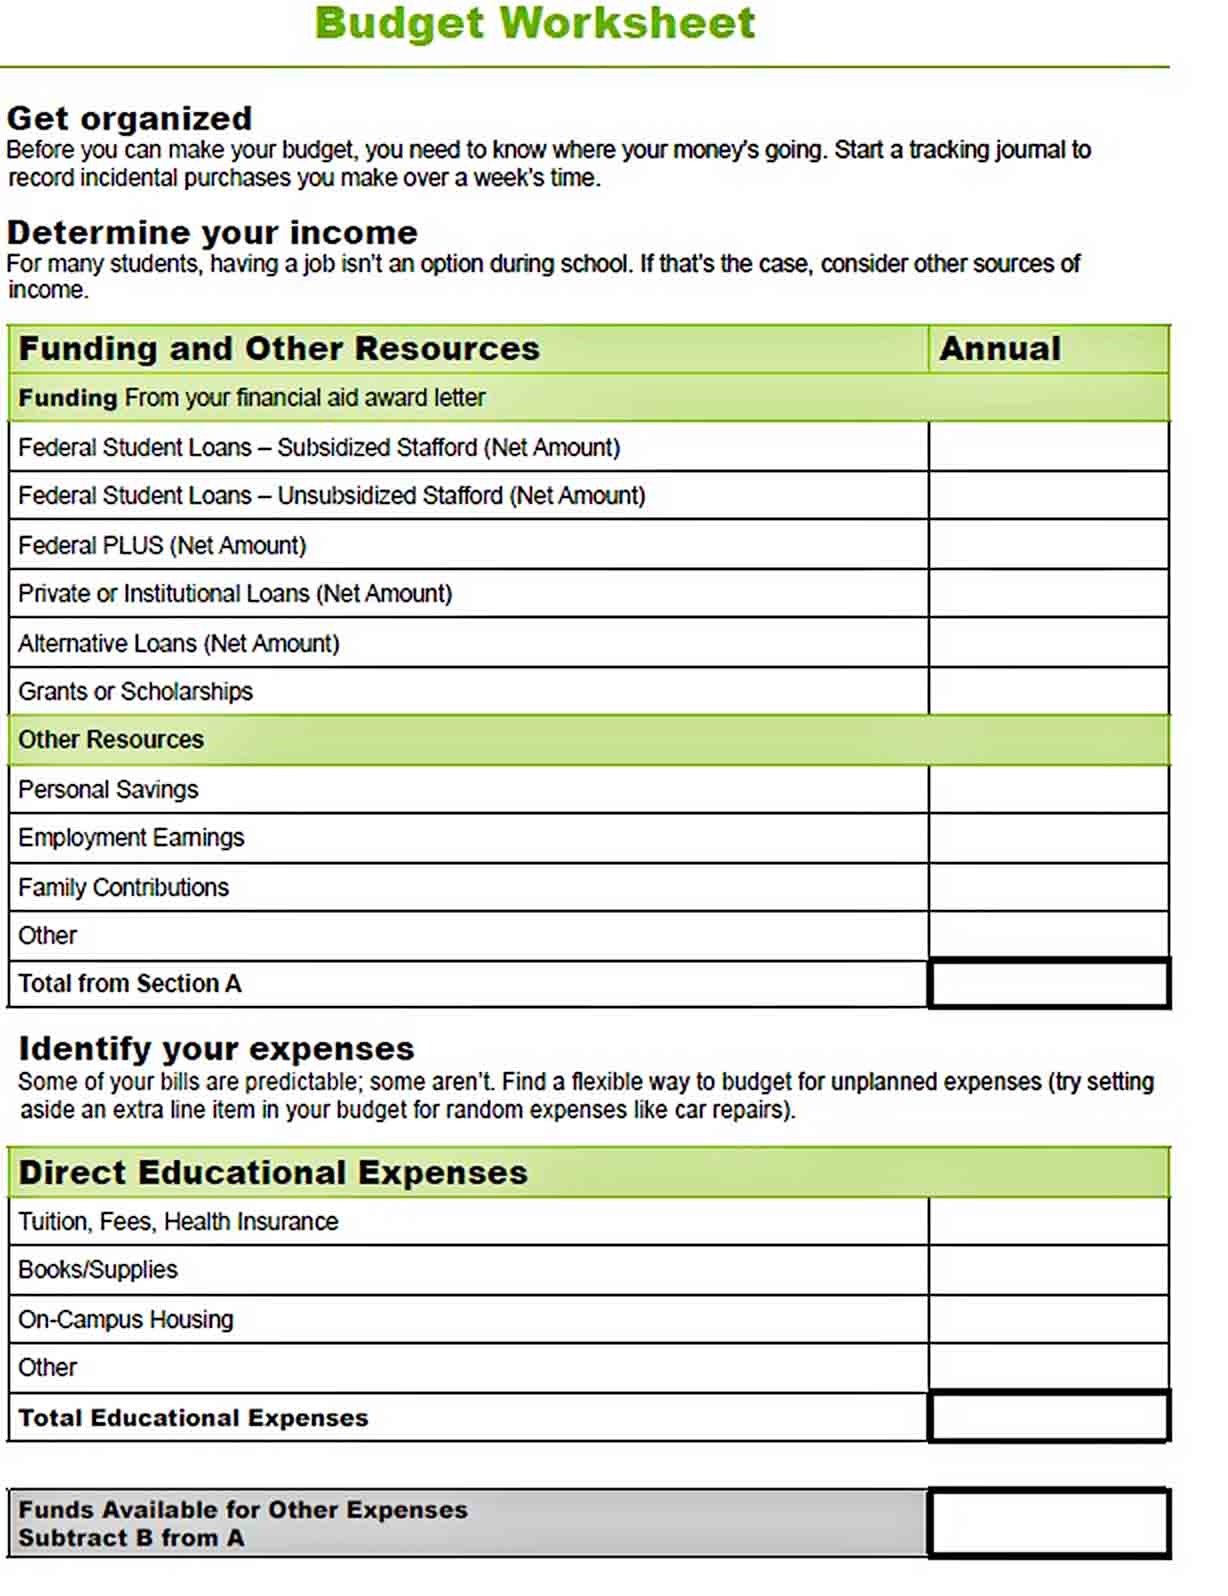 In School Budget Worksheet sample